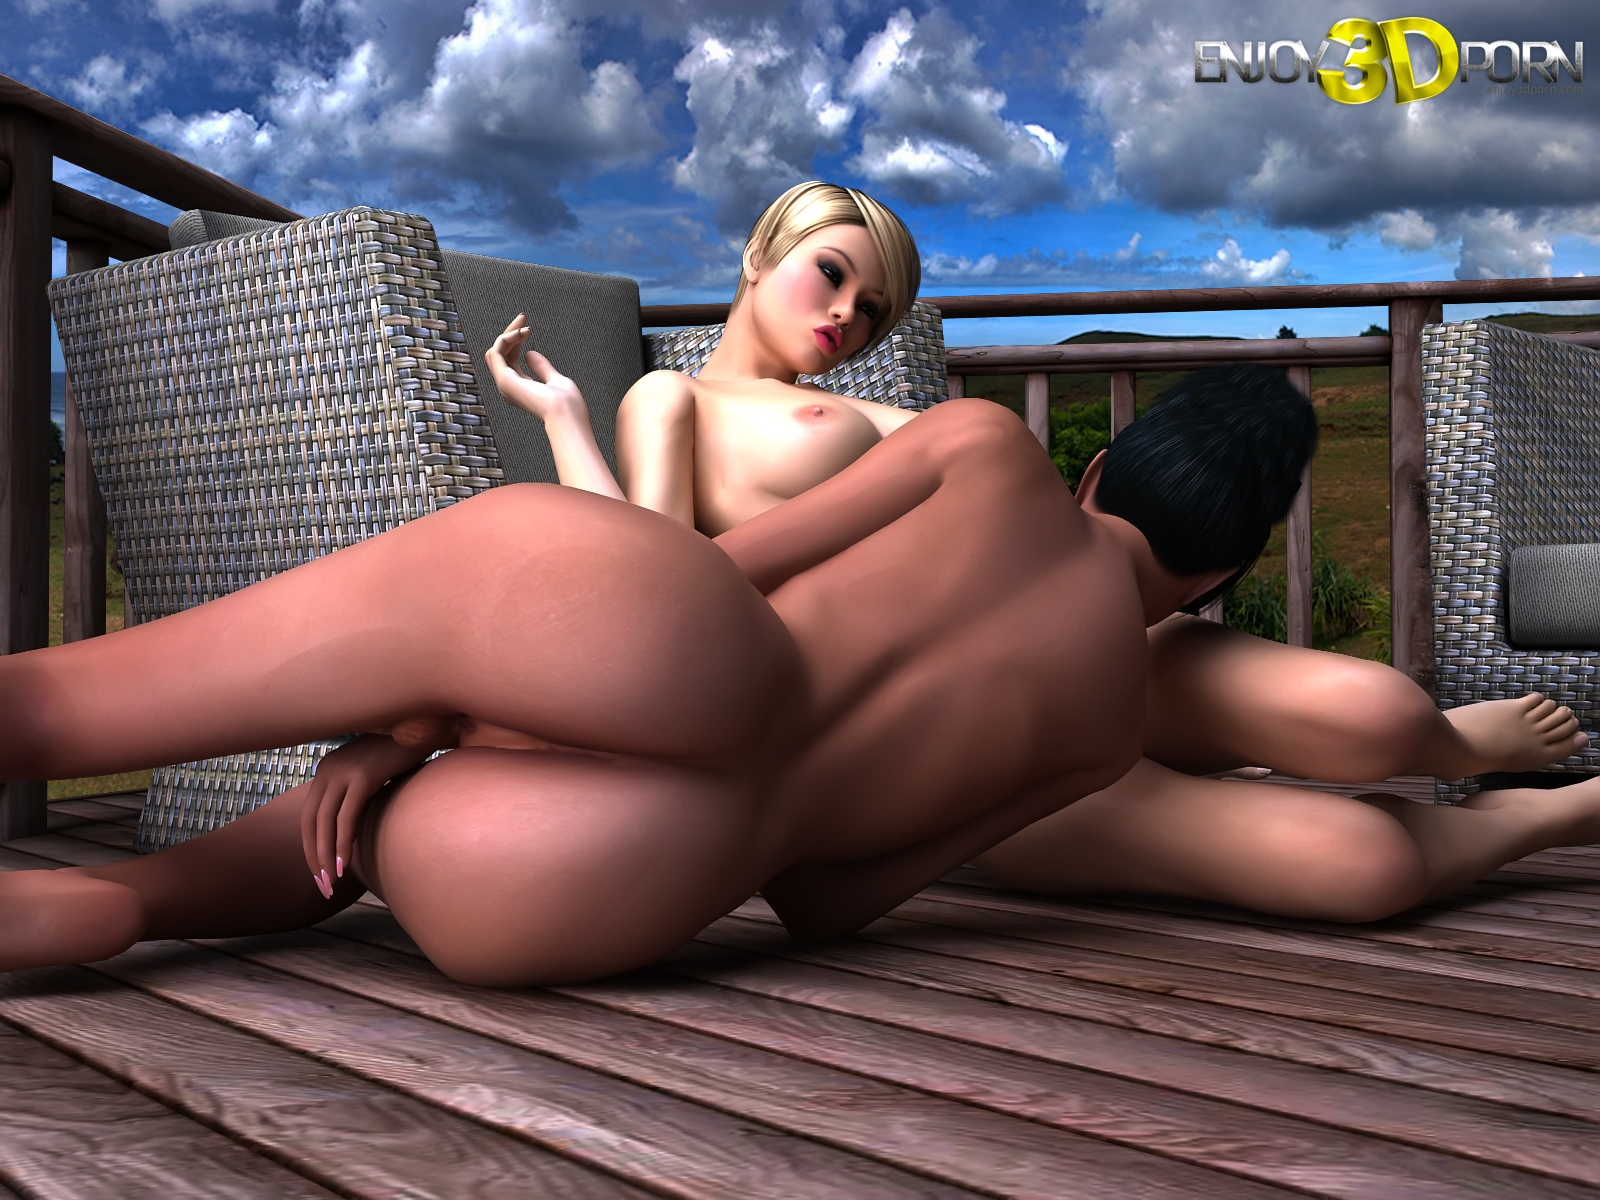 3d anime porn for pc free fucks gallery